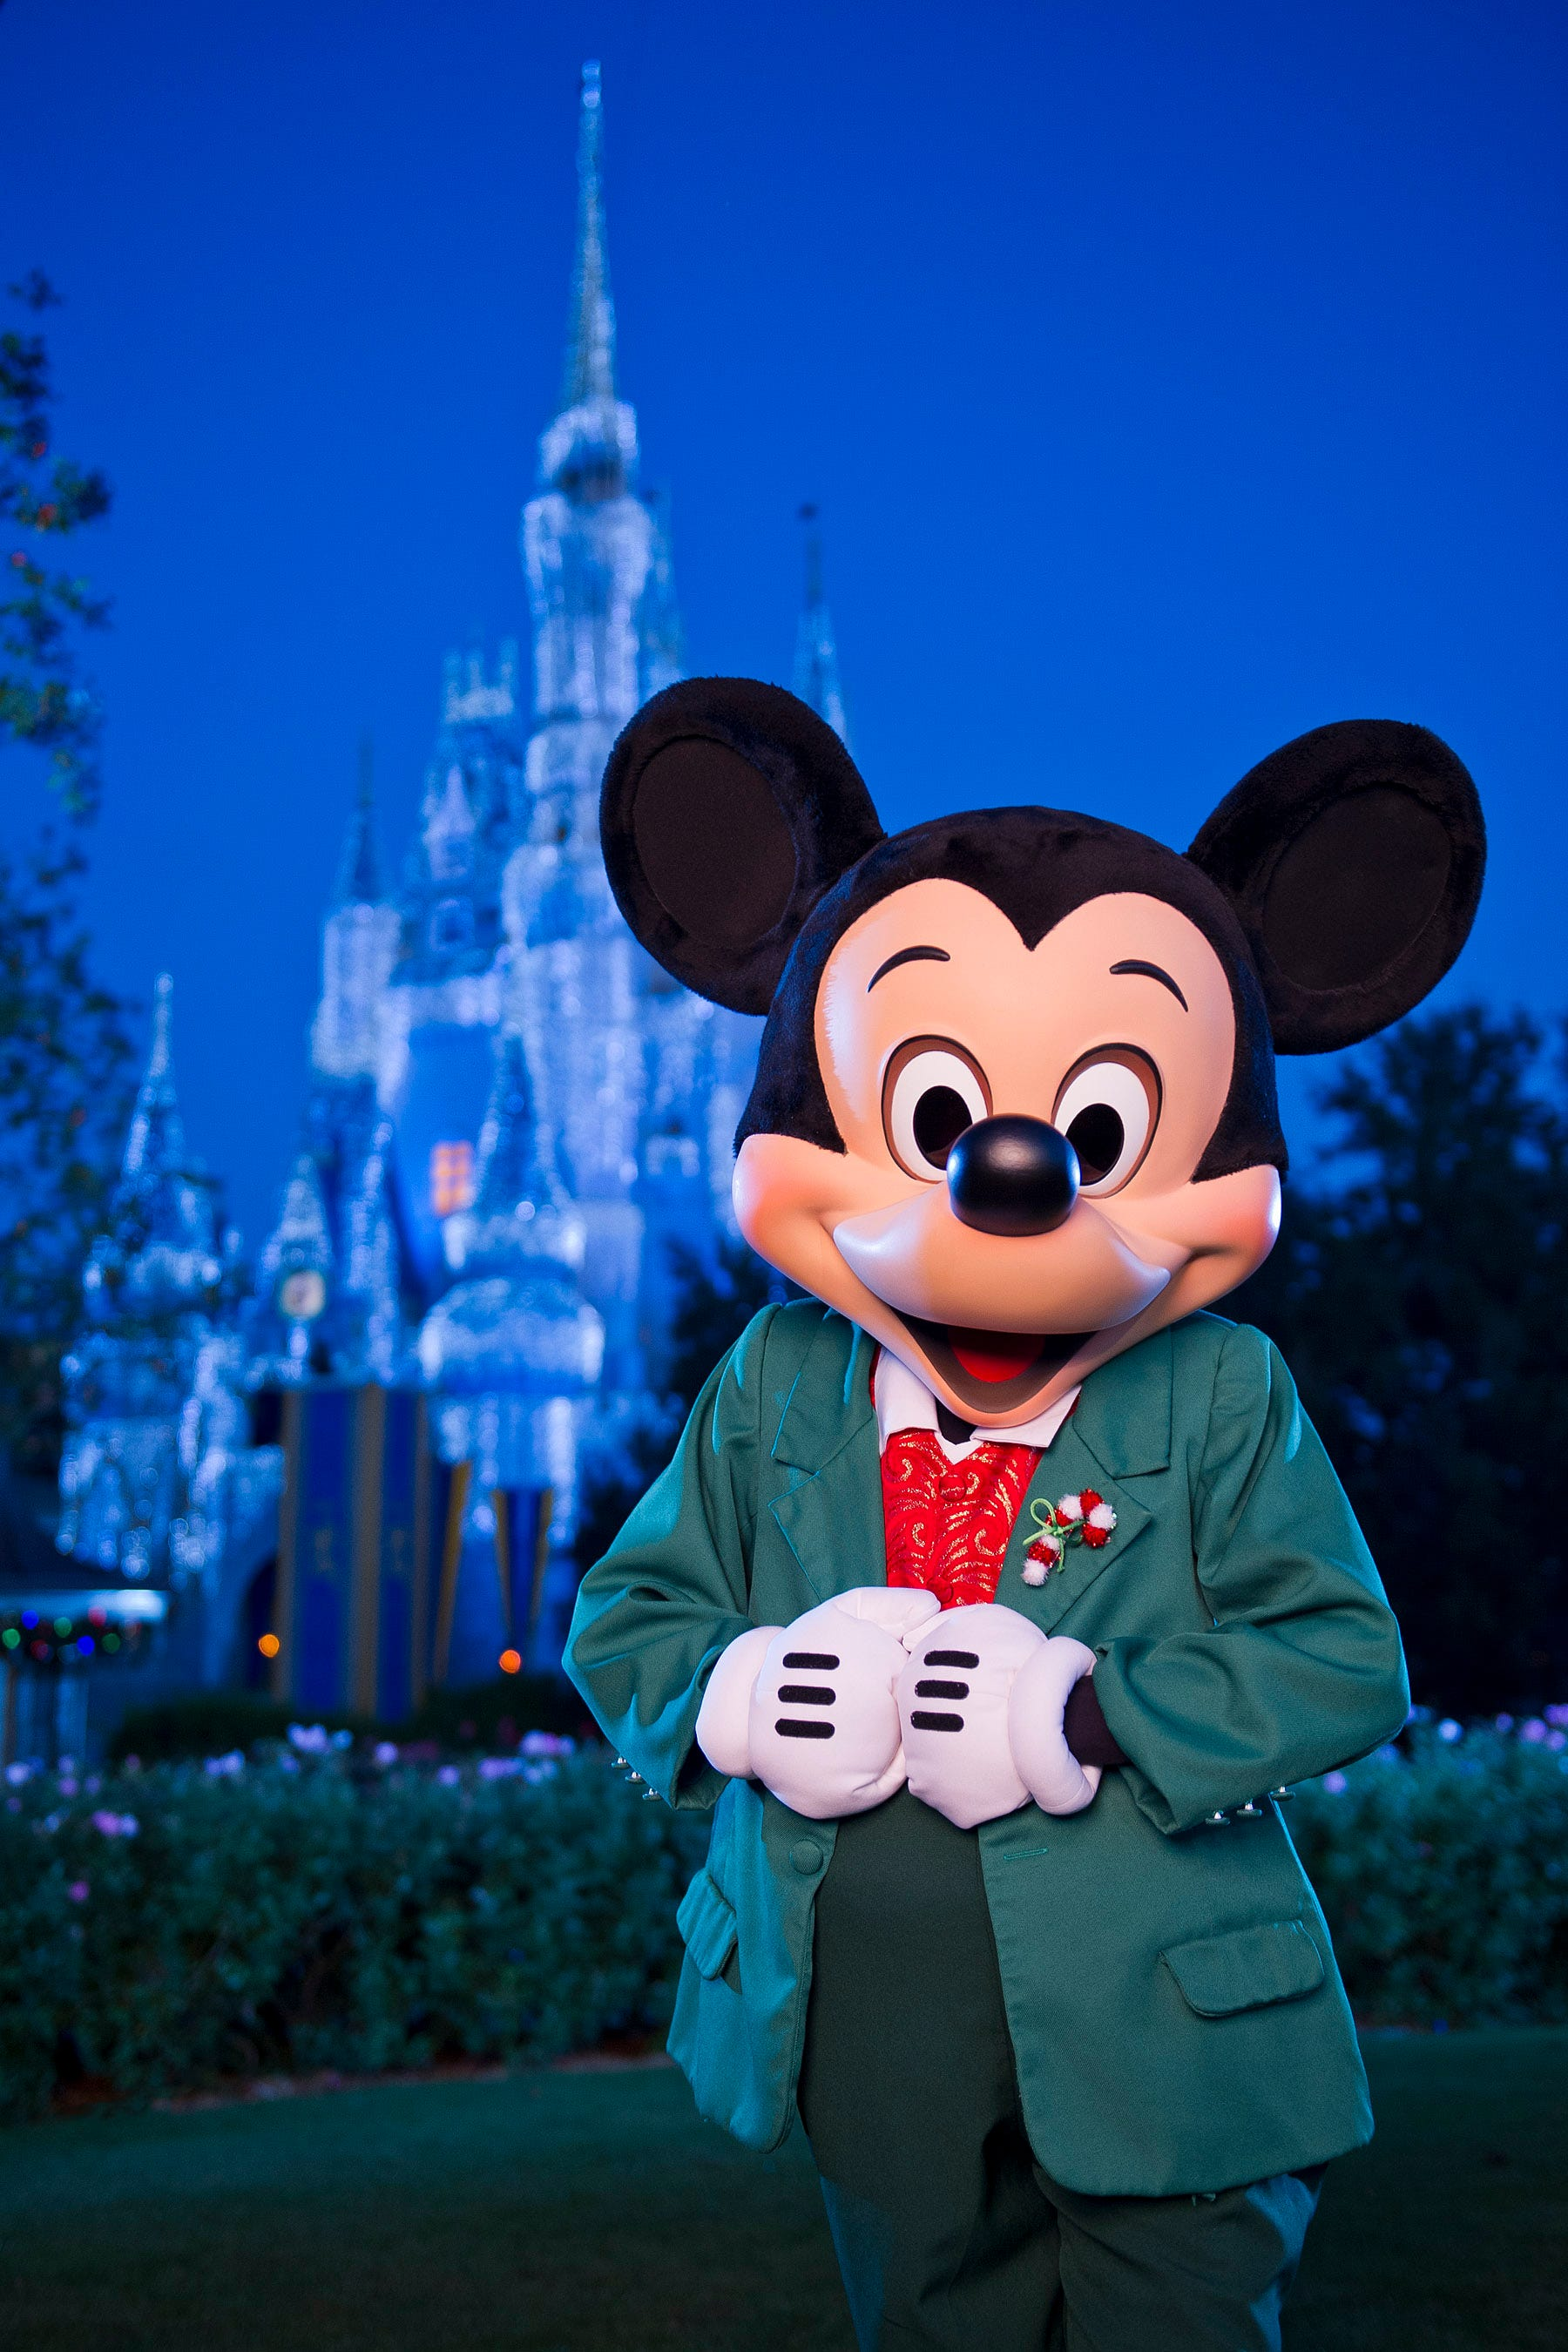 Visiting Disneyland or Disney World for the holidays? Don't make these common mistakes